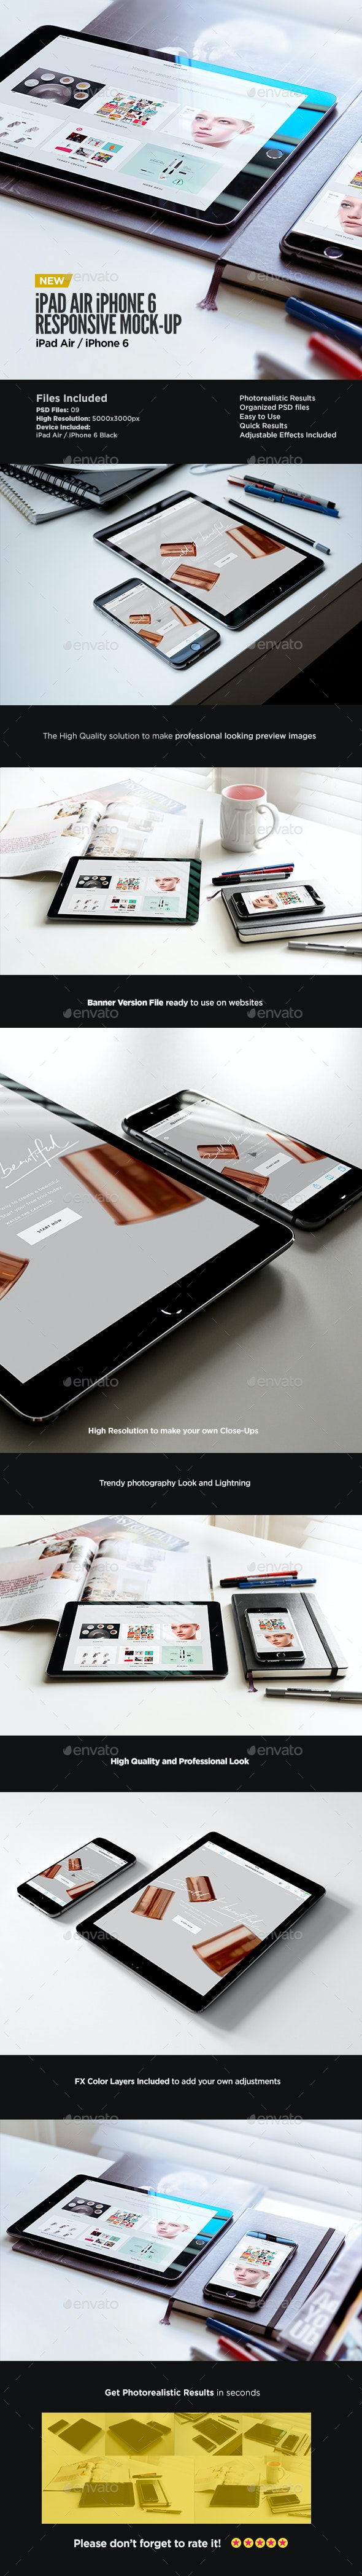 Tablet iPad Air iPhone 6 Black Display Mock-Up  - Displays Product Mock-Ups